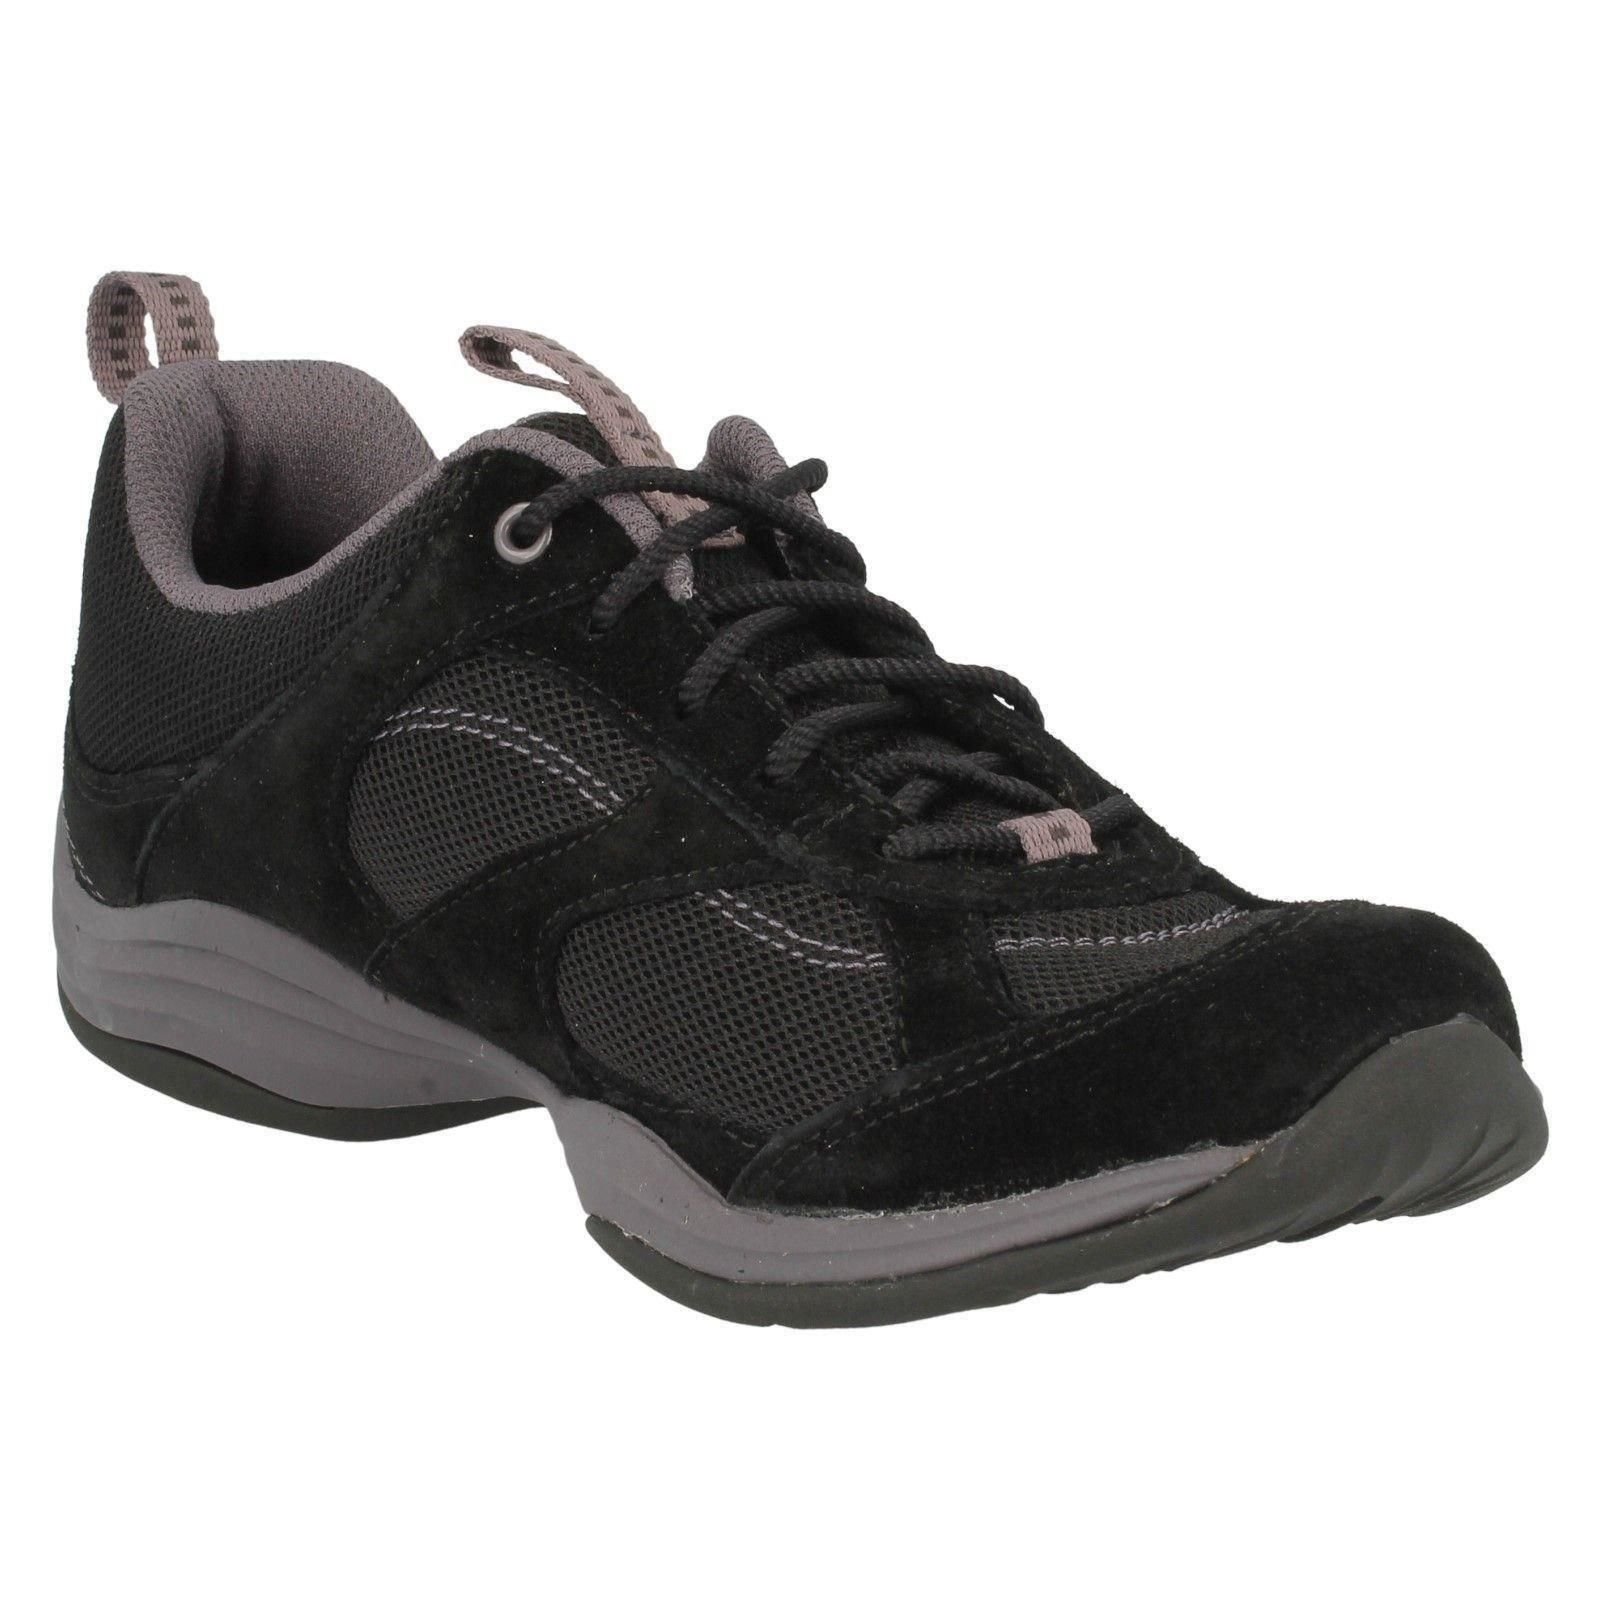 clarks black suede lace up everyday walking